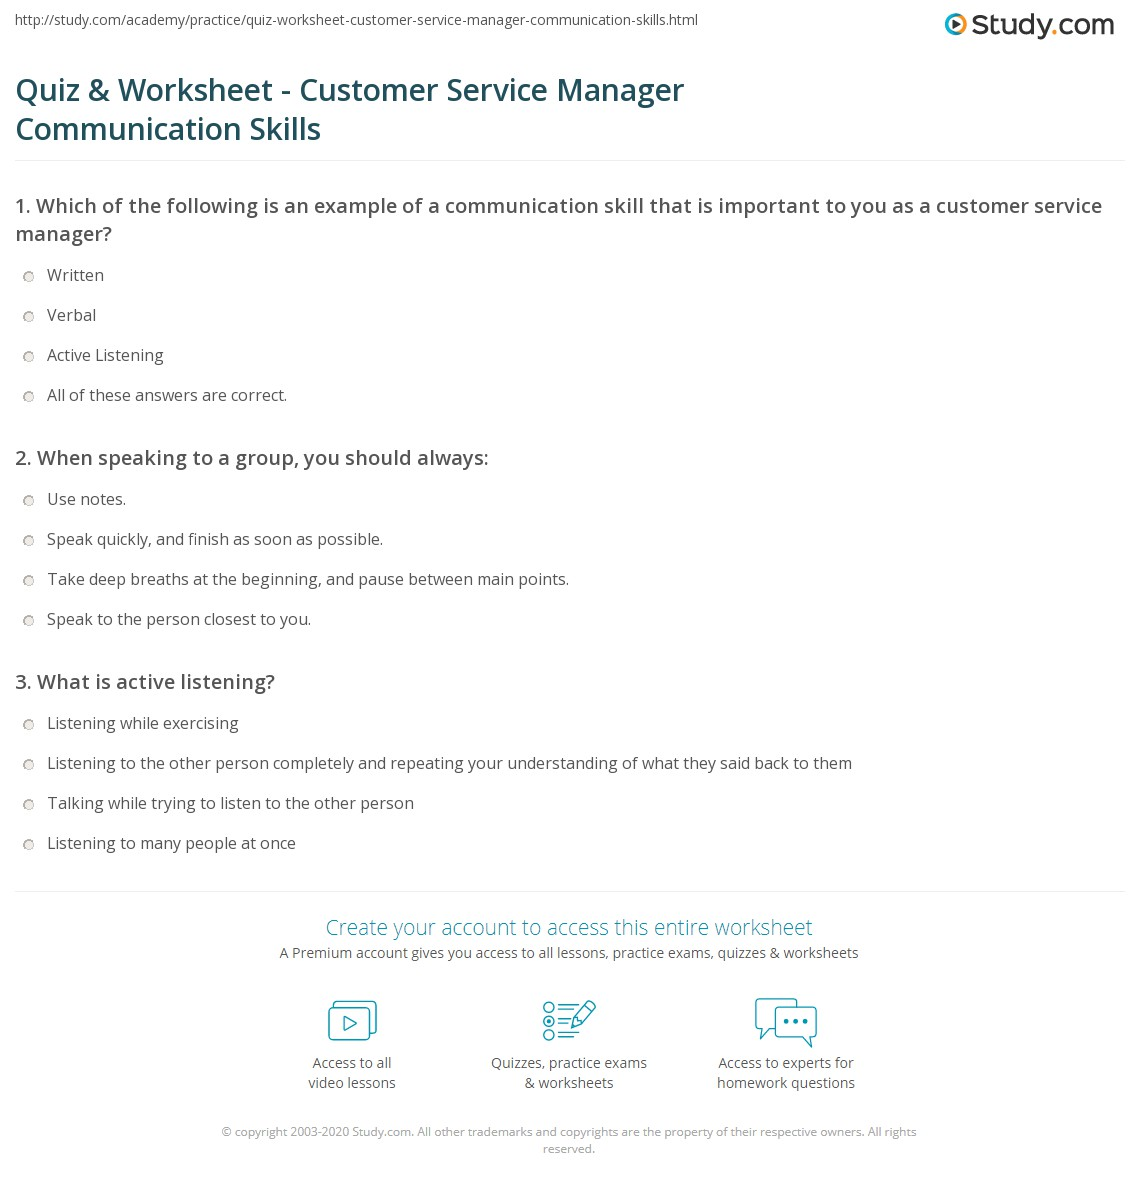 quiz worksheet customer service manager communication skills print communication skills for customer service managers worksheet